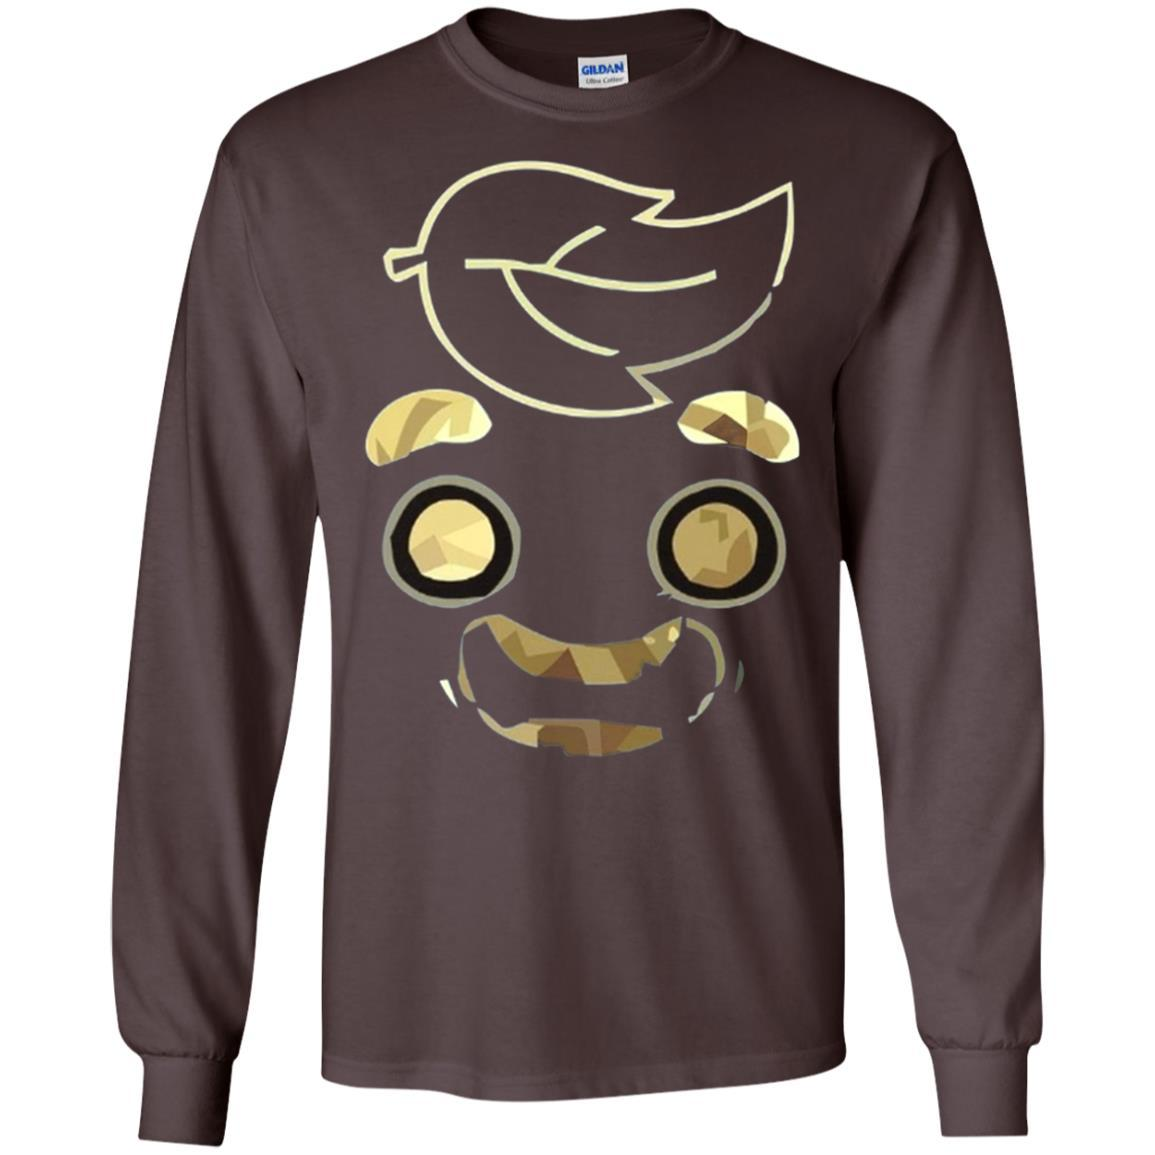 Guava Juice Limited Edition Gold Foil T Shirt Long Sleeve 240